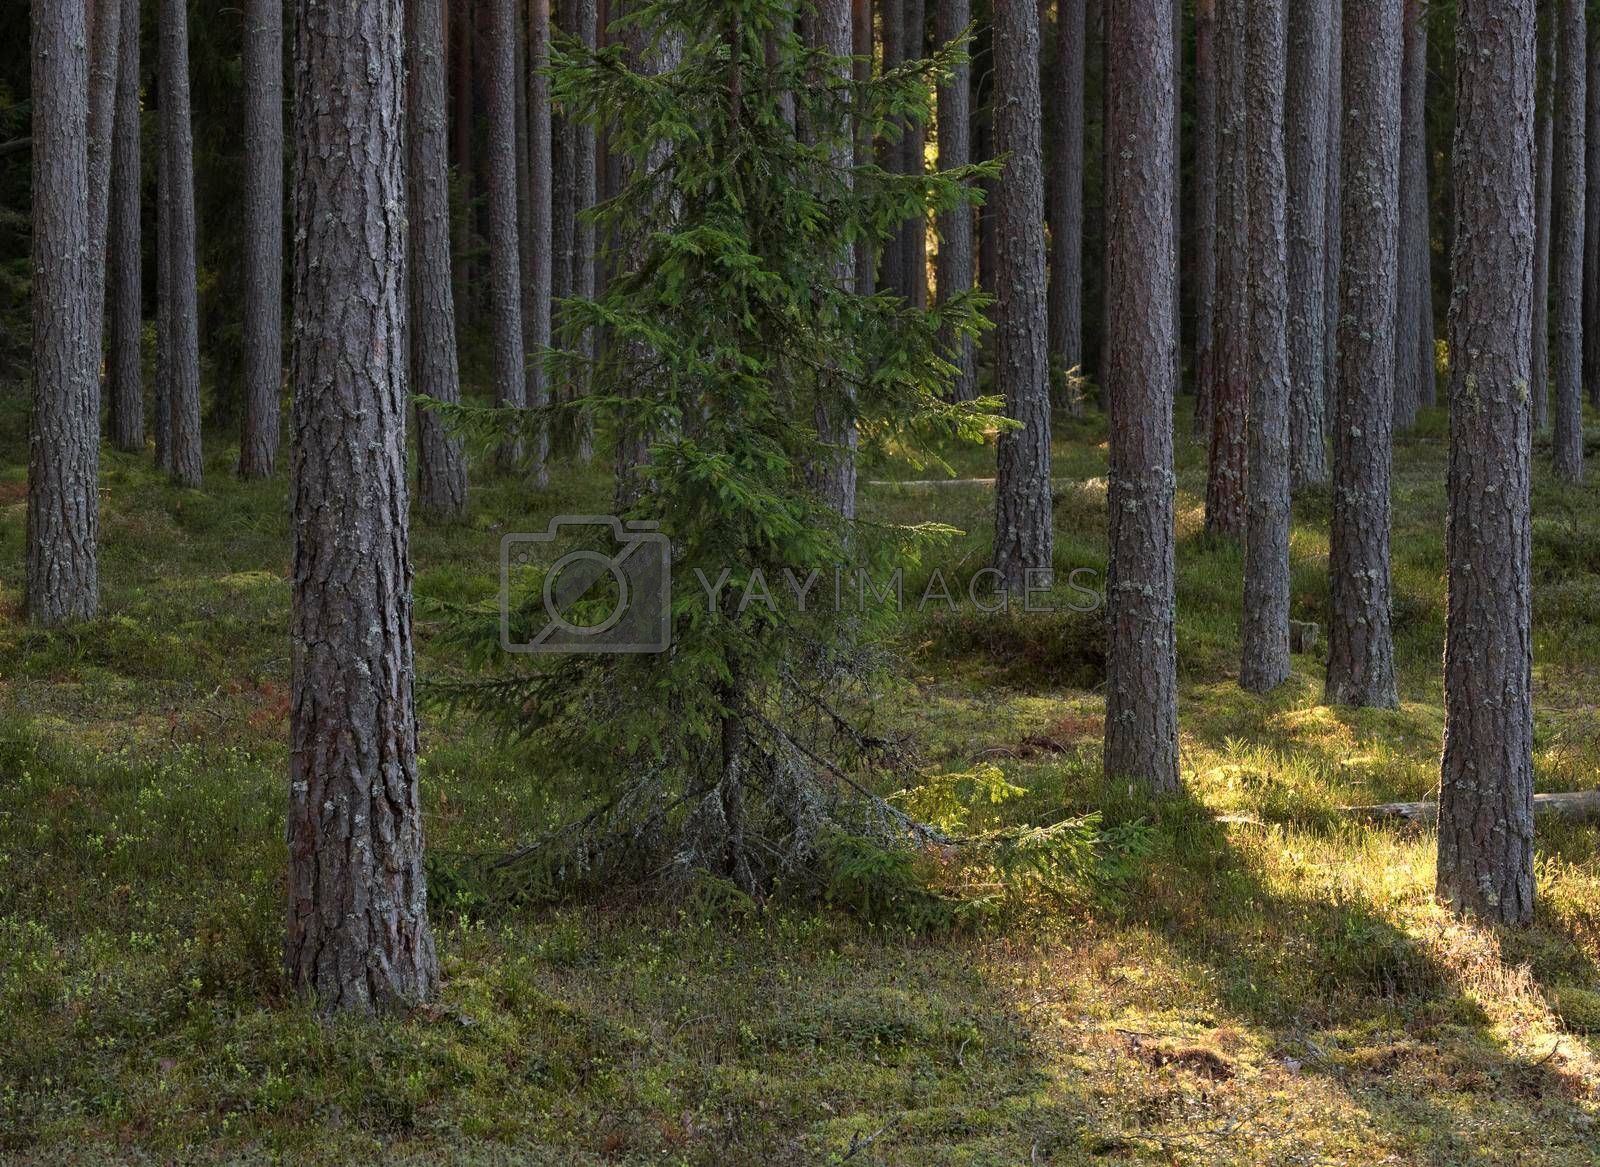 Royalty free image of Pine forest in the sunny summer day.  by phortcach